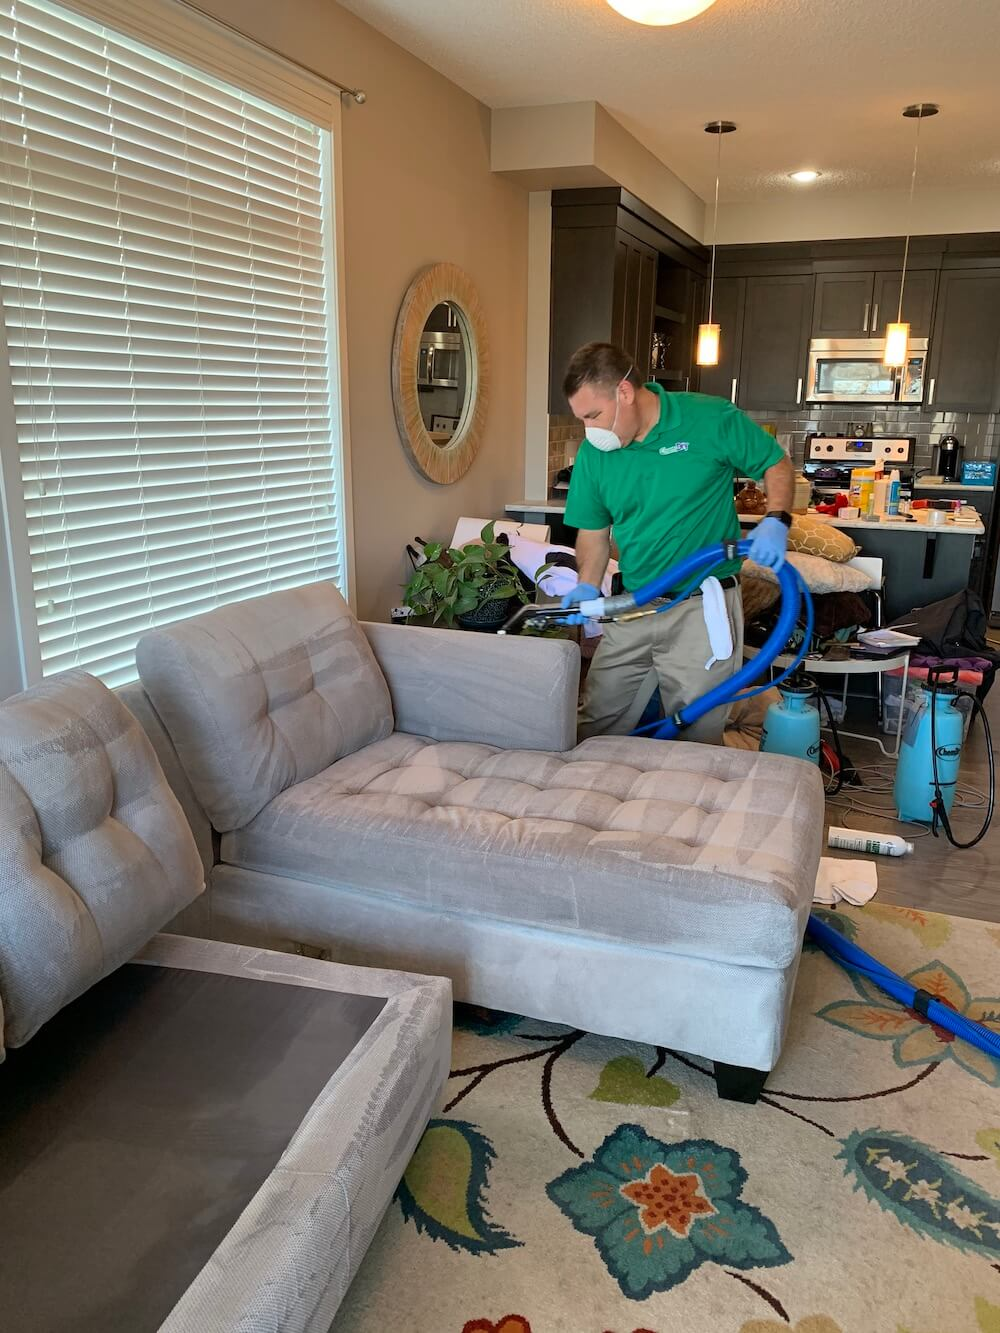 Upholstery Cleaning in Calgary, AB